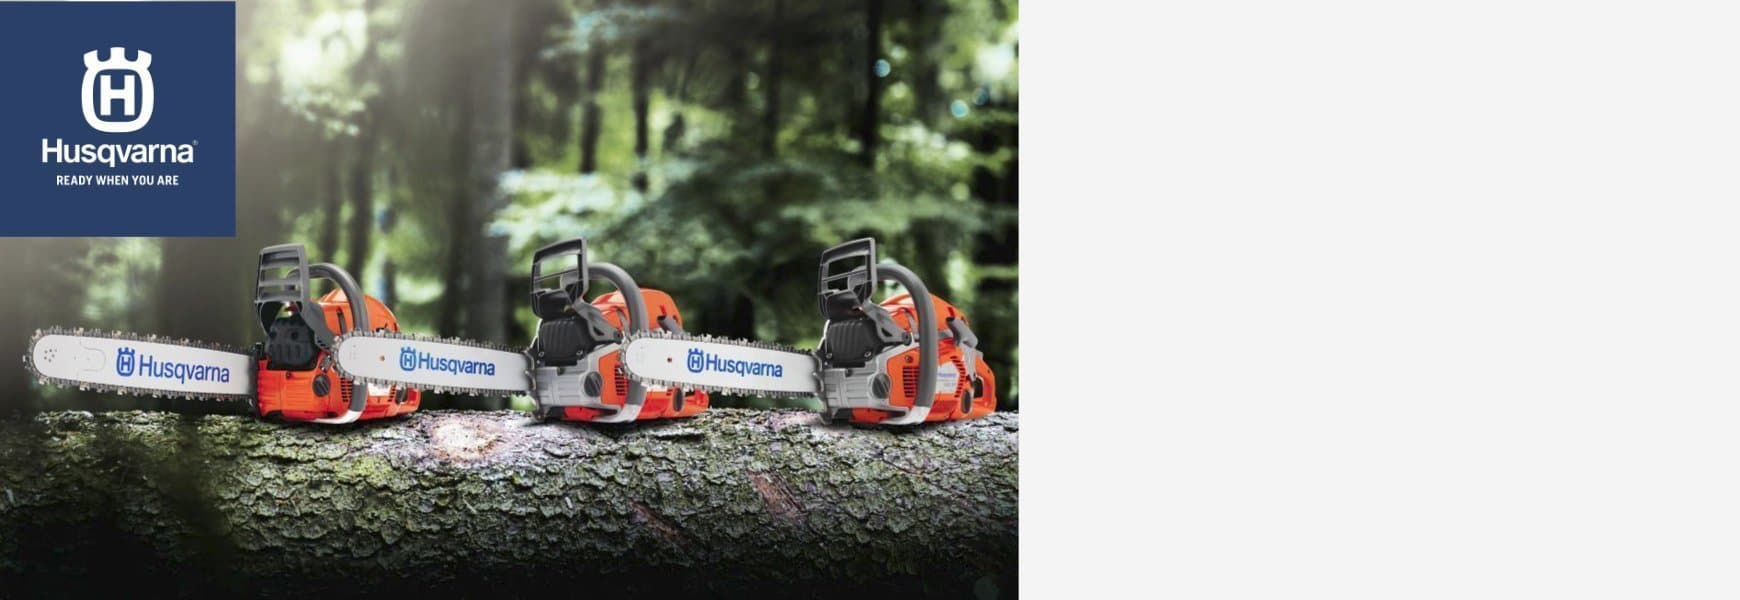 We now carry Husqvarna Equipment. Stop in and check out all the new products